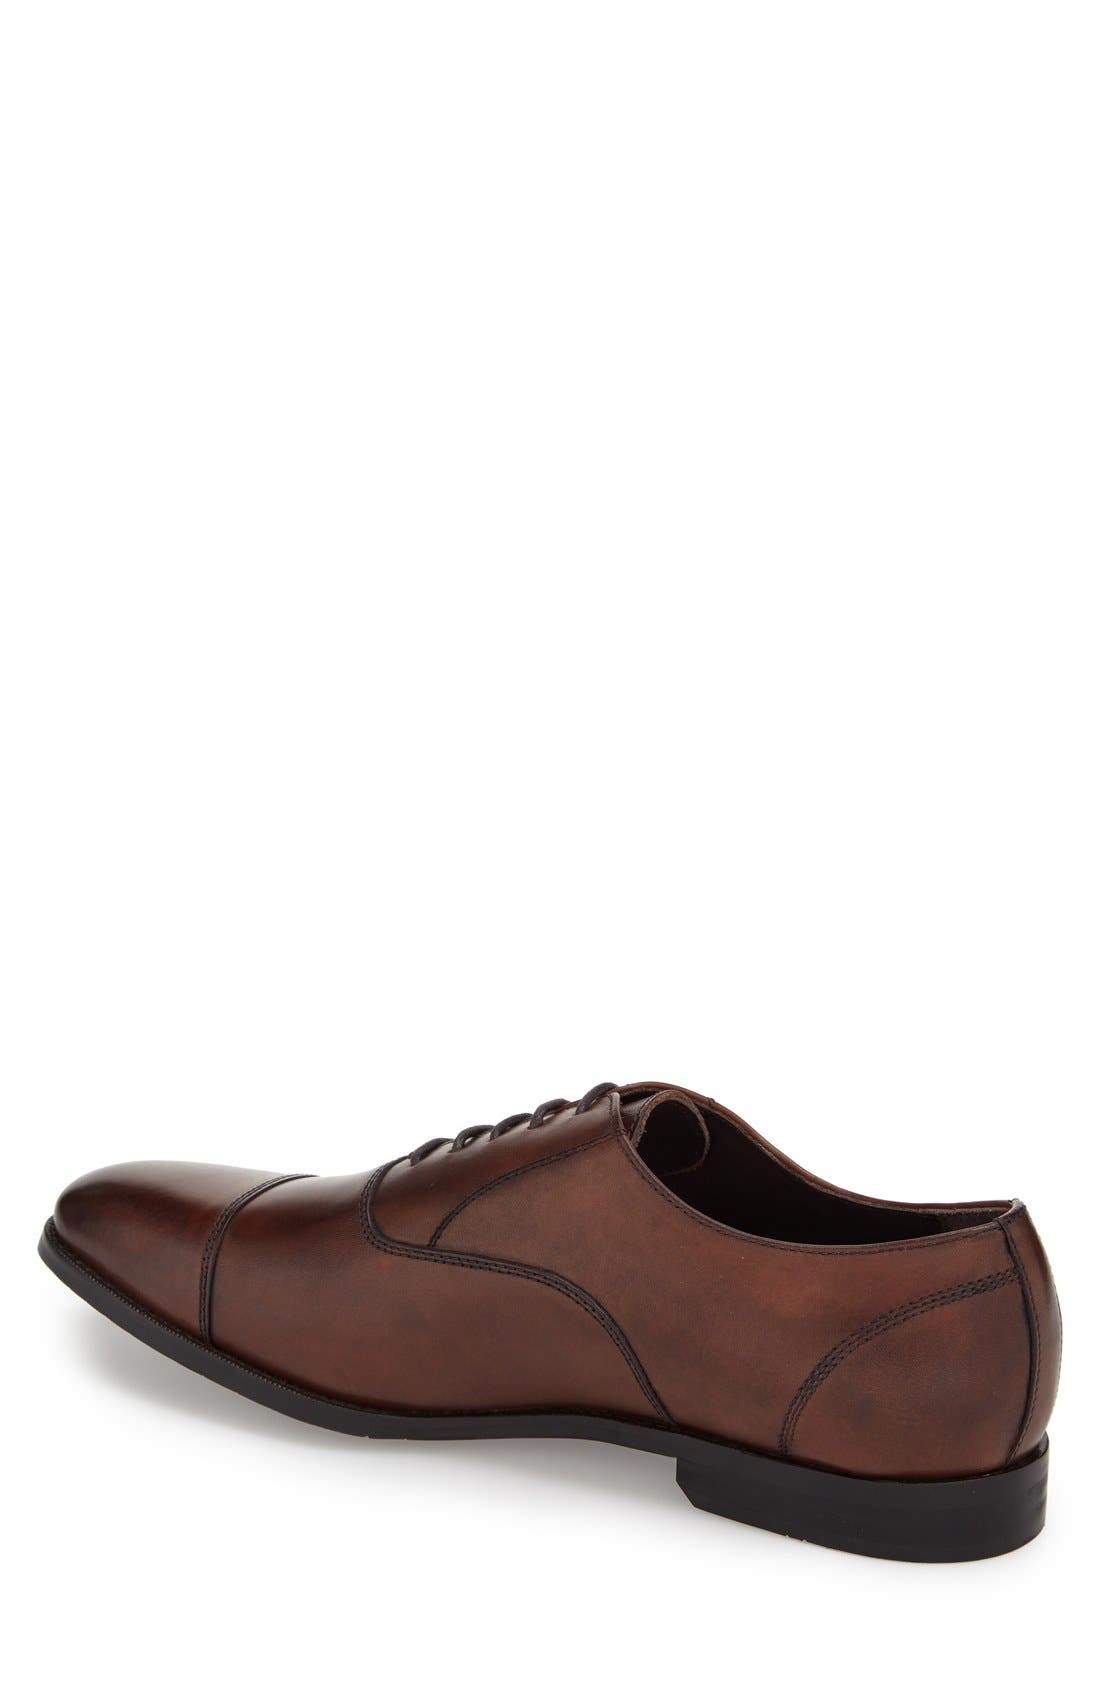 'Dillon' Cap Toe Oxford,                             Alternate thumbnail 2, color,                             Chestnut Leather